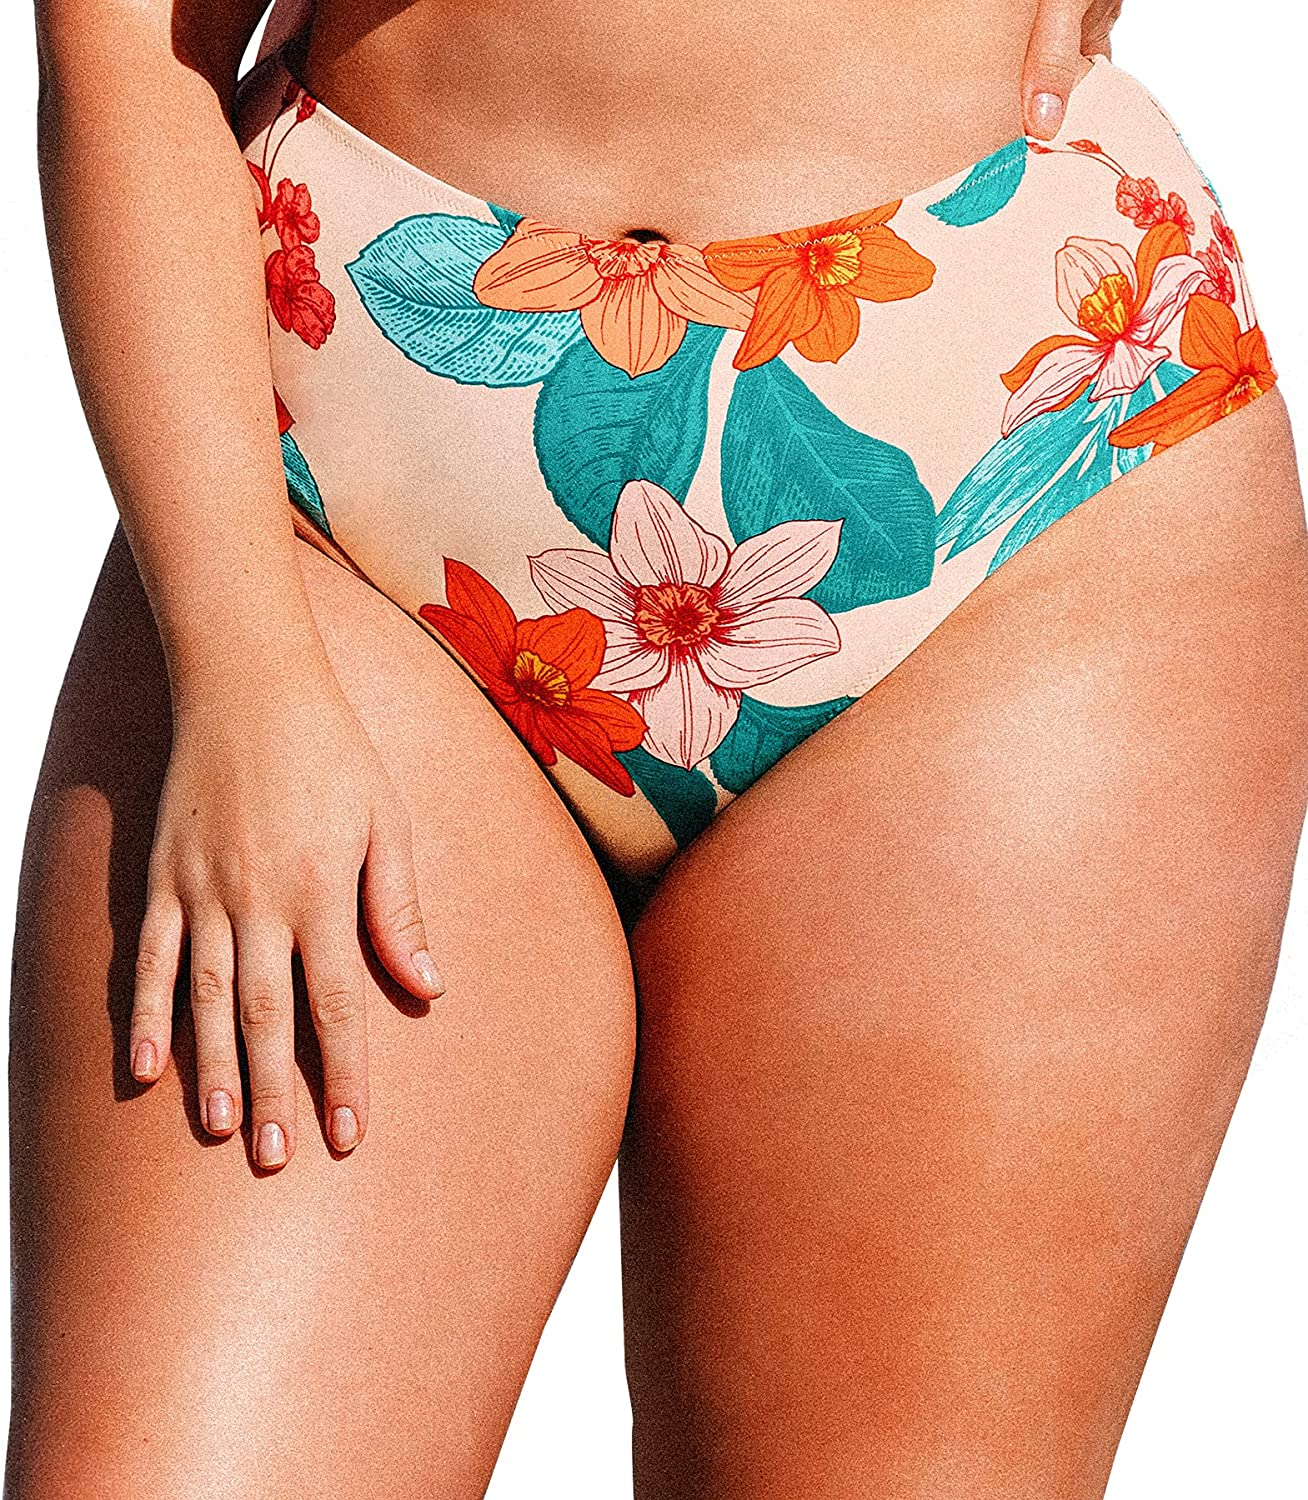 CUPSHE Women's High Waisted Plus Size Bikini Bottom Floral Full Coverage Bathing Suit